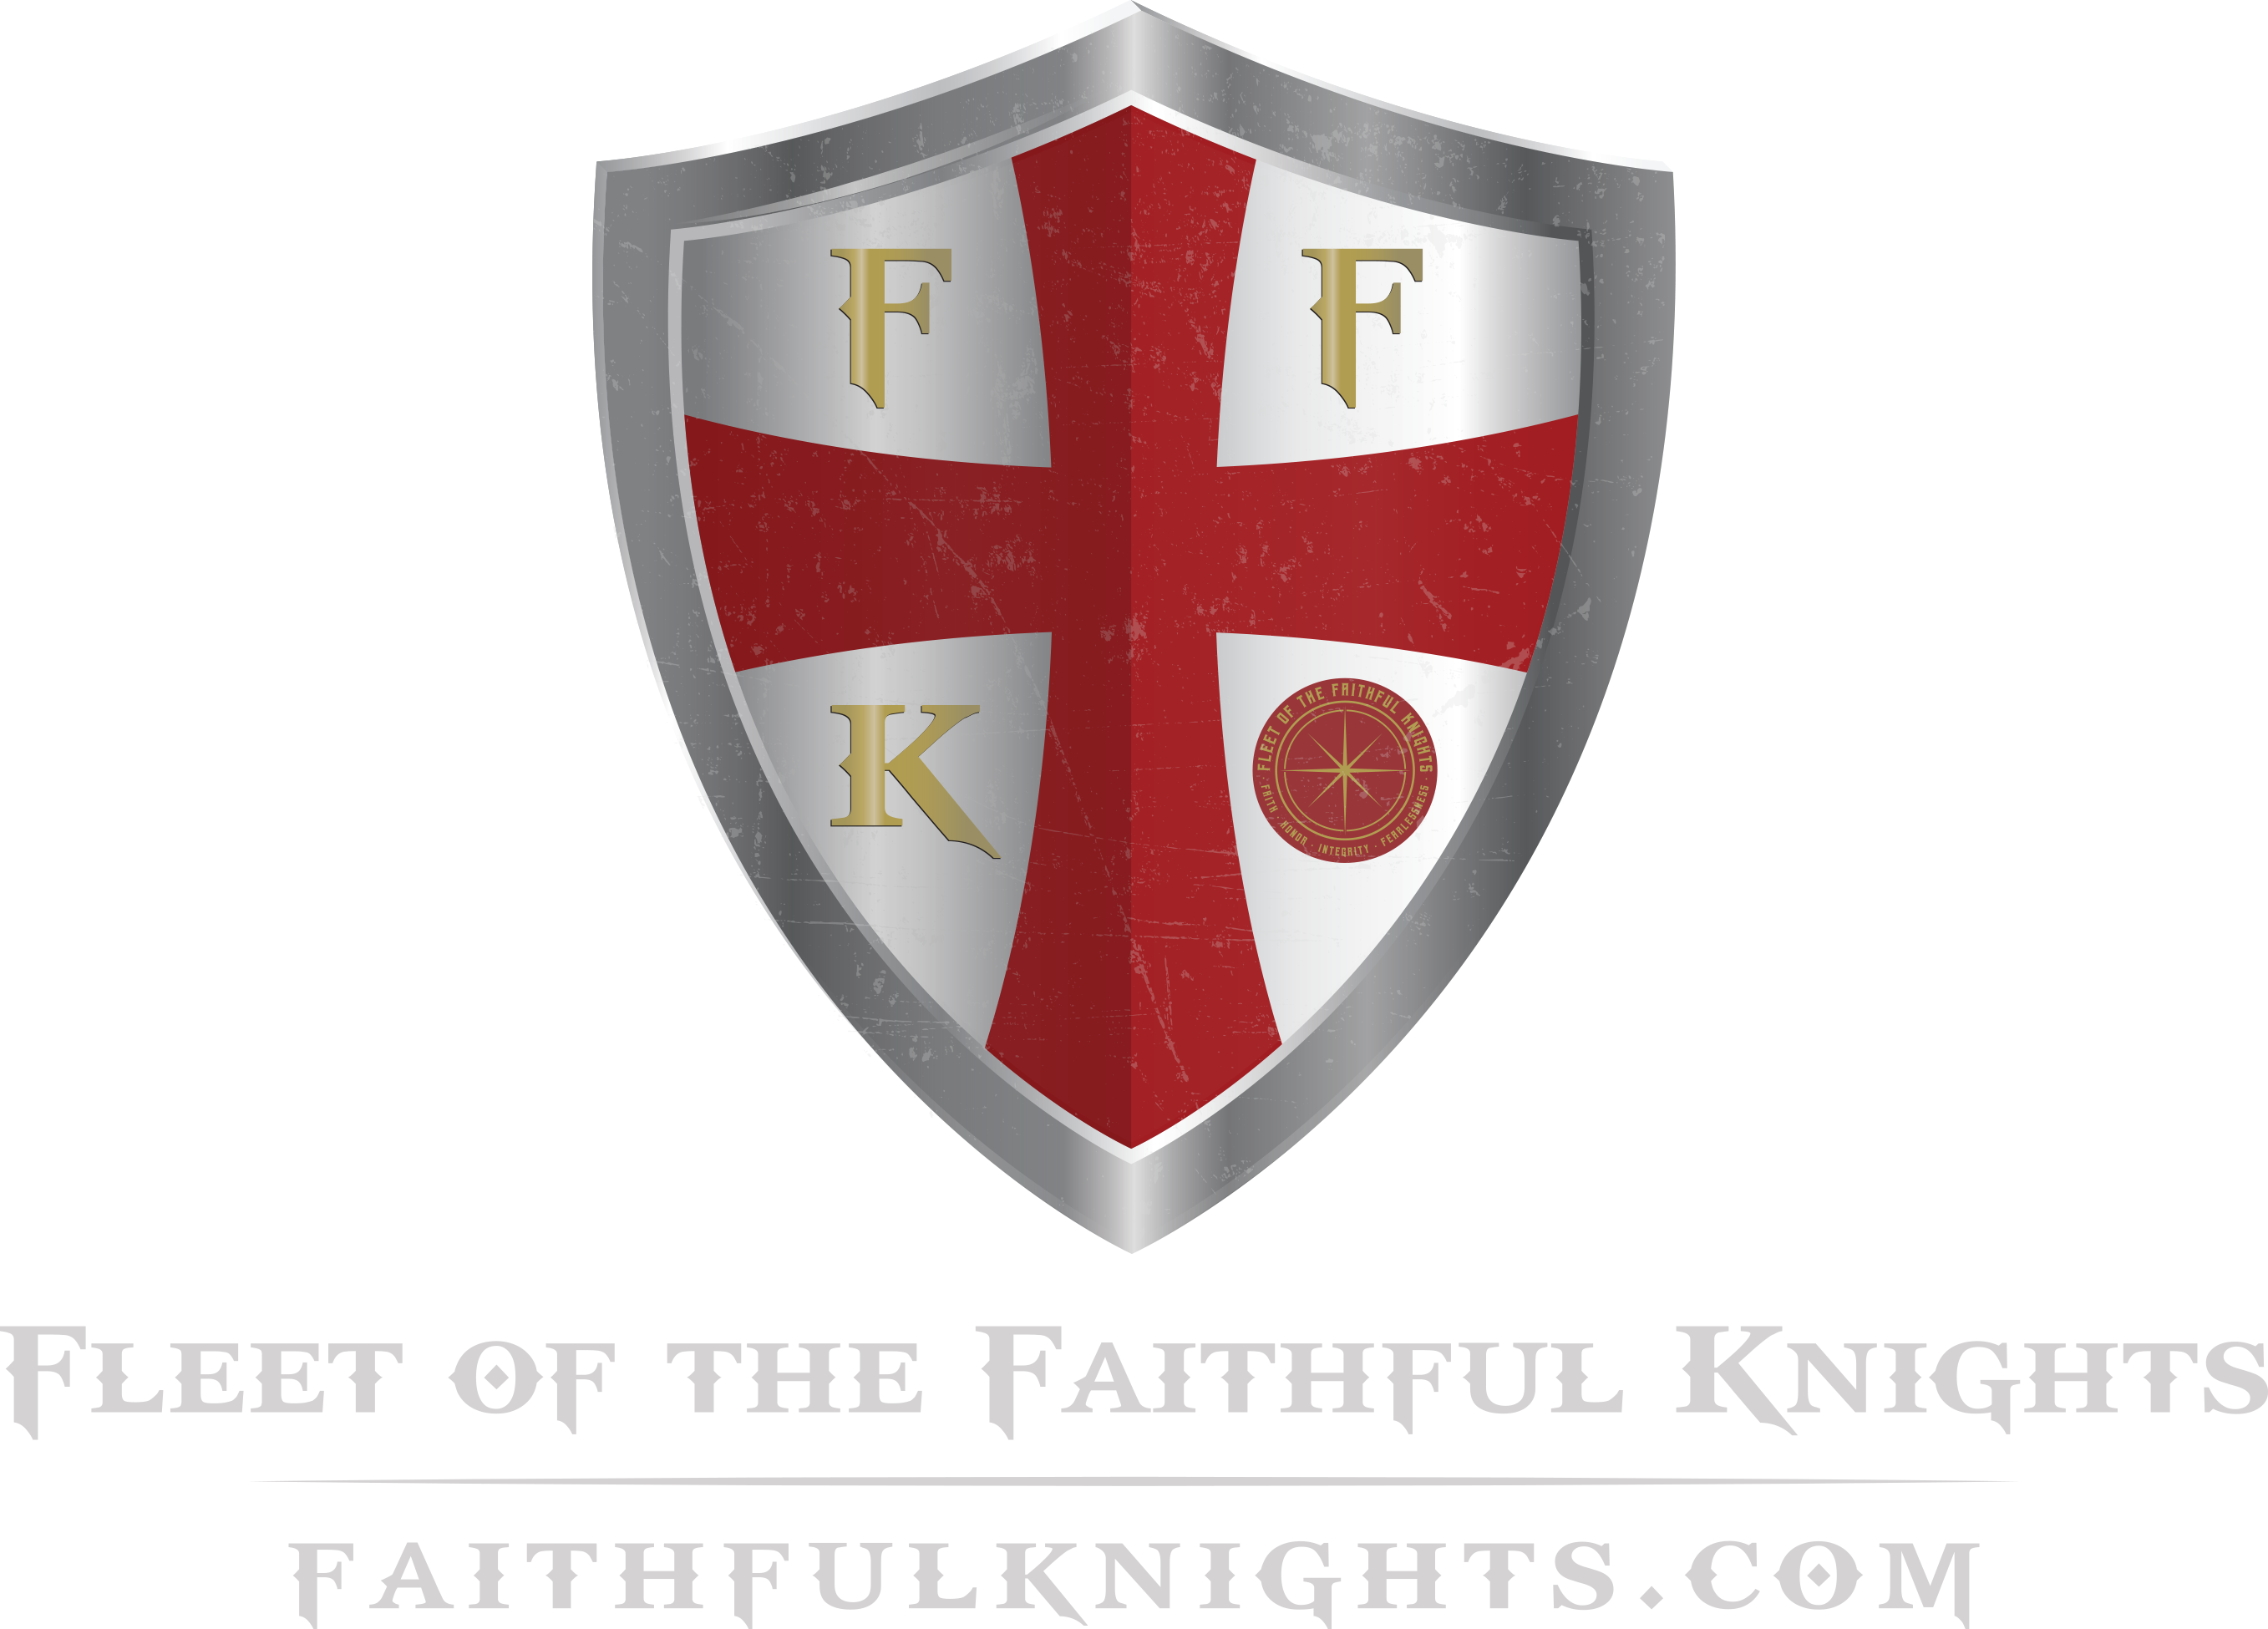 Fleet of the faithful knights logo final white text